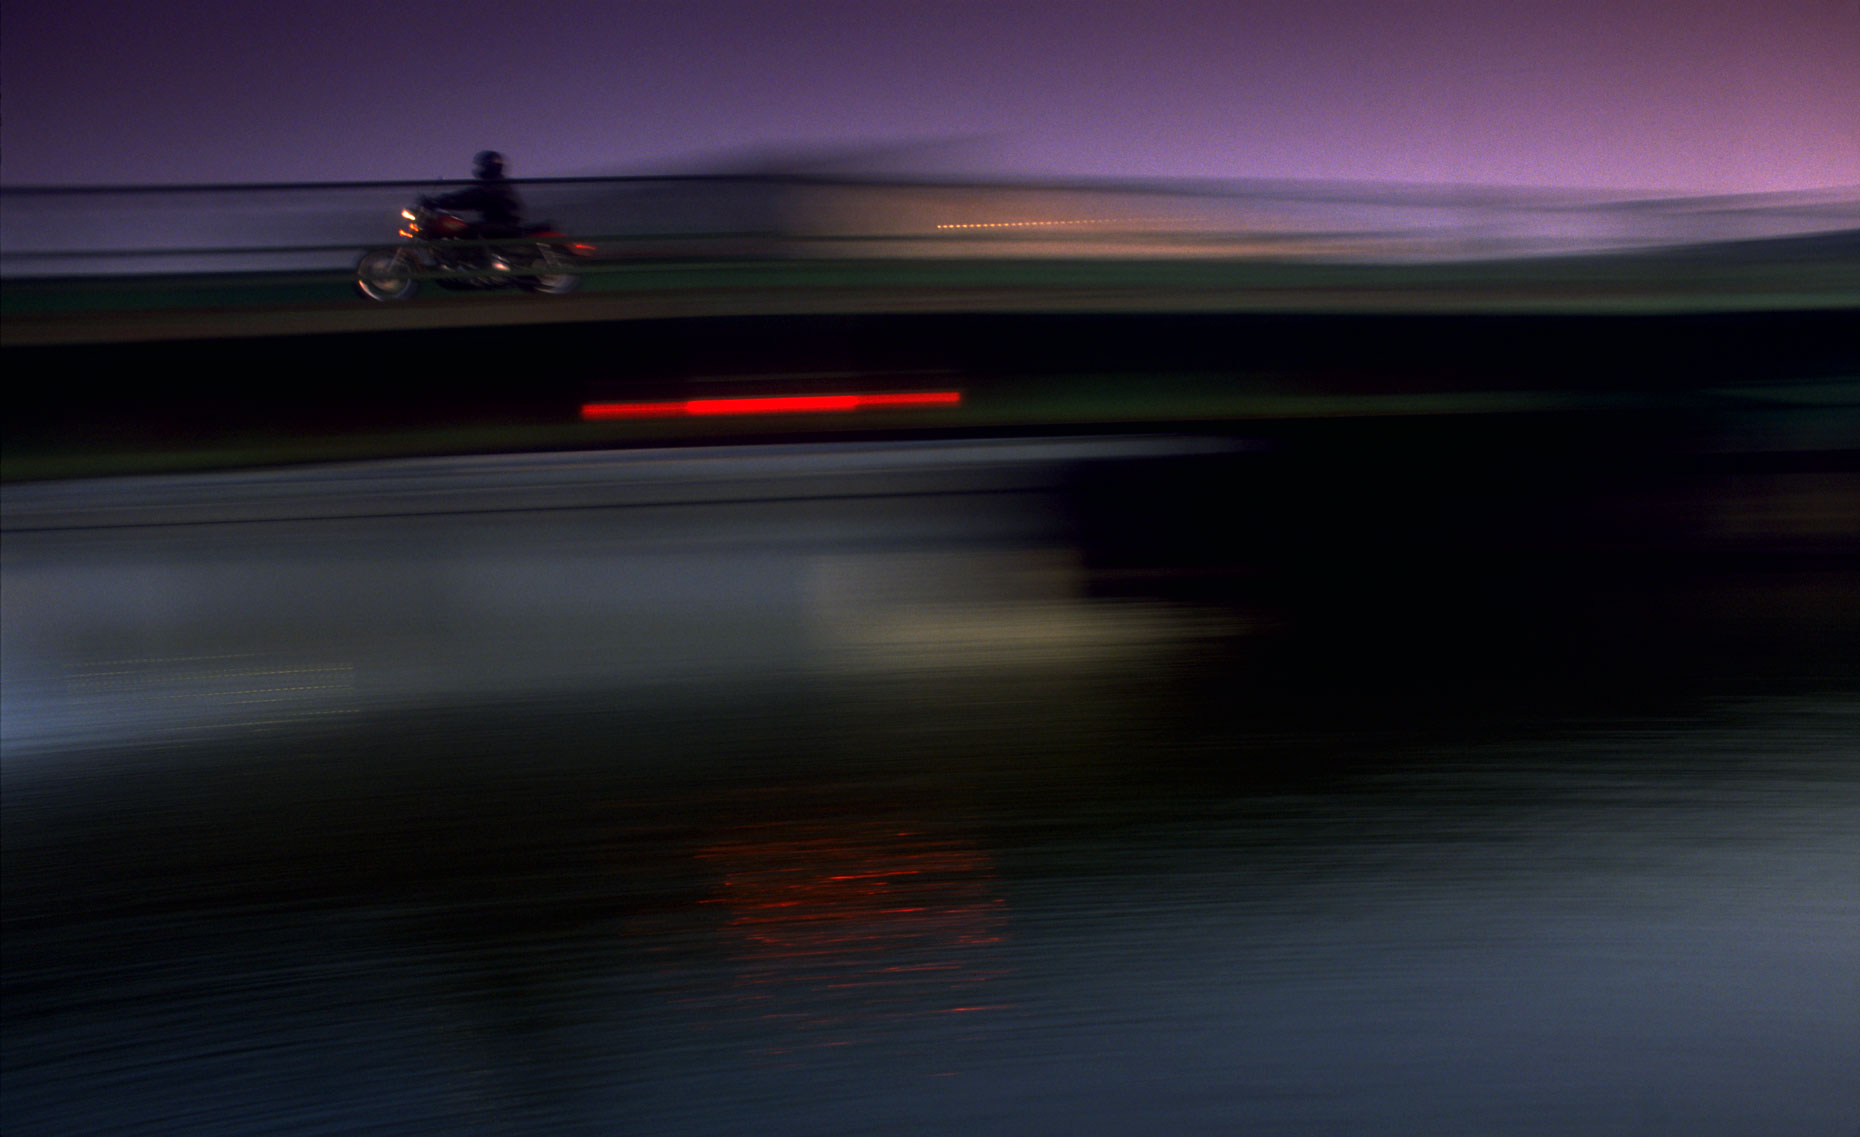 3-HARLEY-BRIDGE-BLUR-FINAL